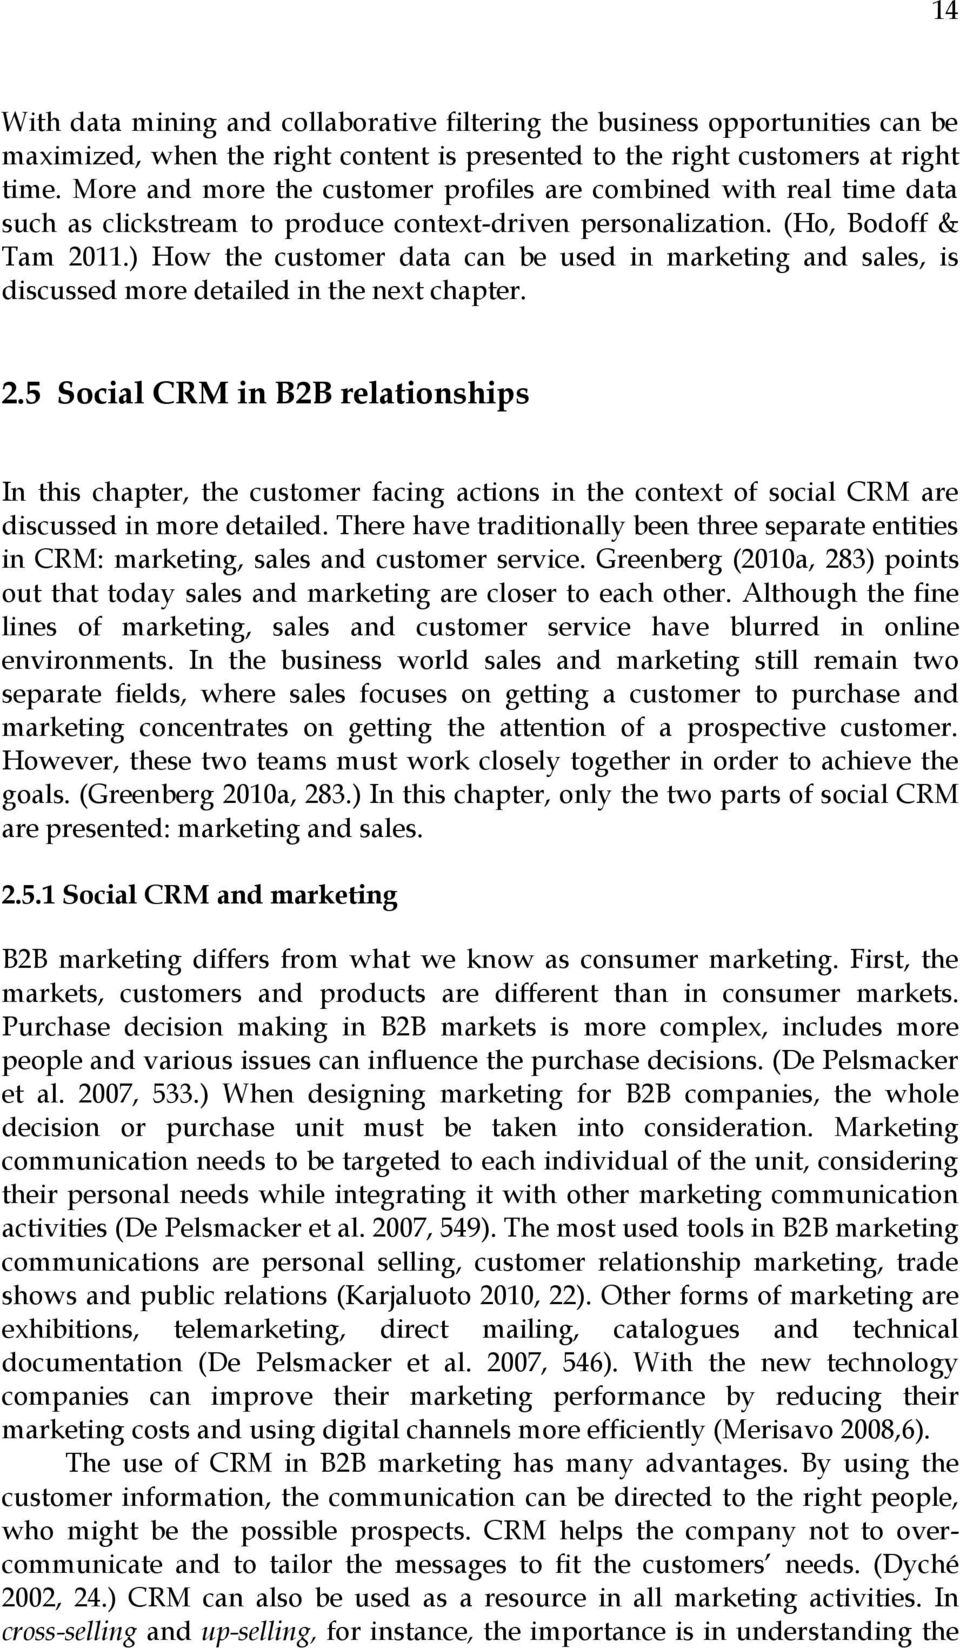 social crm and digital marketing communication Digital marketing is the marketing of products or services using digital technologies, mainly on the internet, but also including mobile phones, display advertising, and any other digital medium [1] digital marketing's development since the 1990s and 2000s has changed the way brands and businesses use technology for marketing [2.